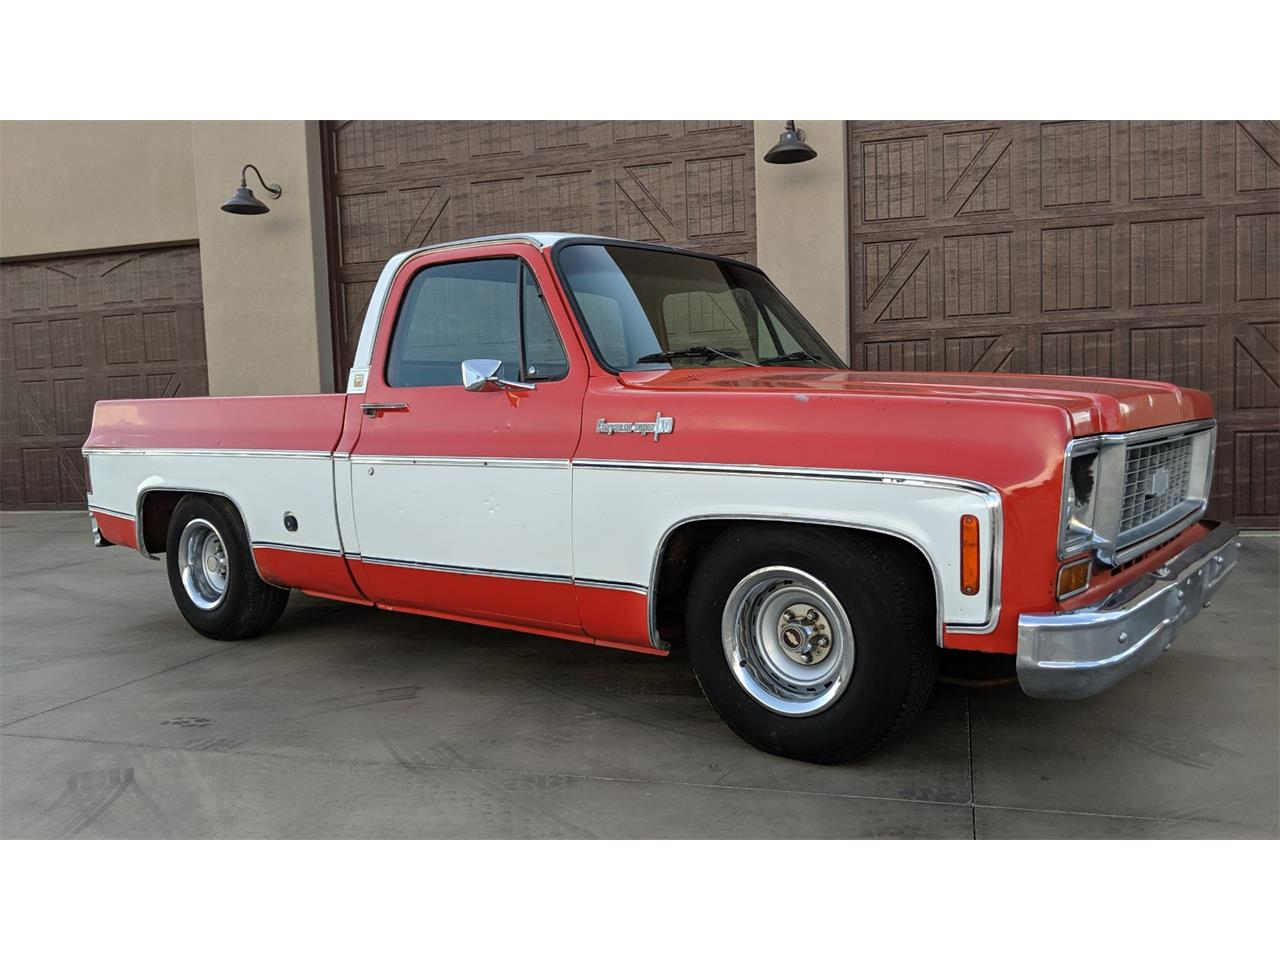 Large Picture of 1974 C10 located in Arizona - $9,500.00 Offered by a Private Seller - QN2L